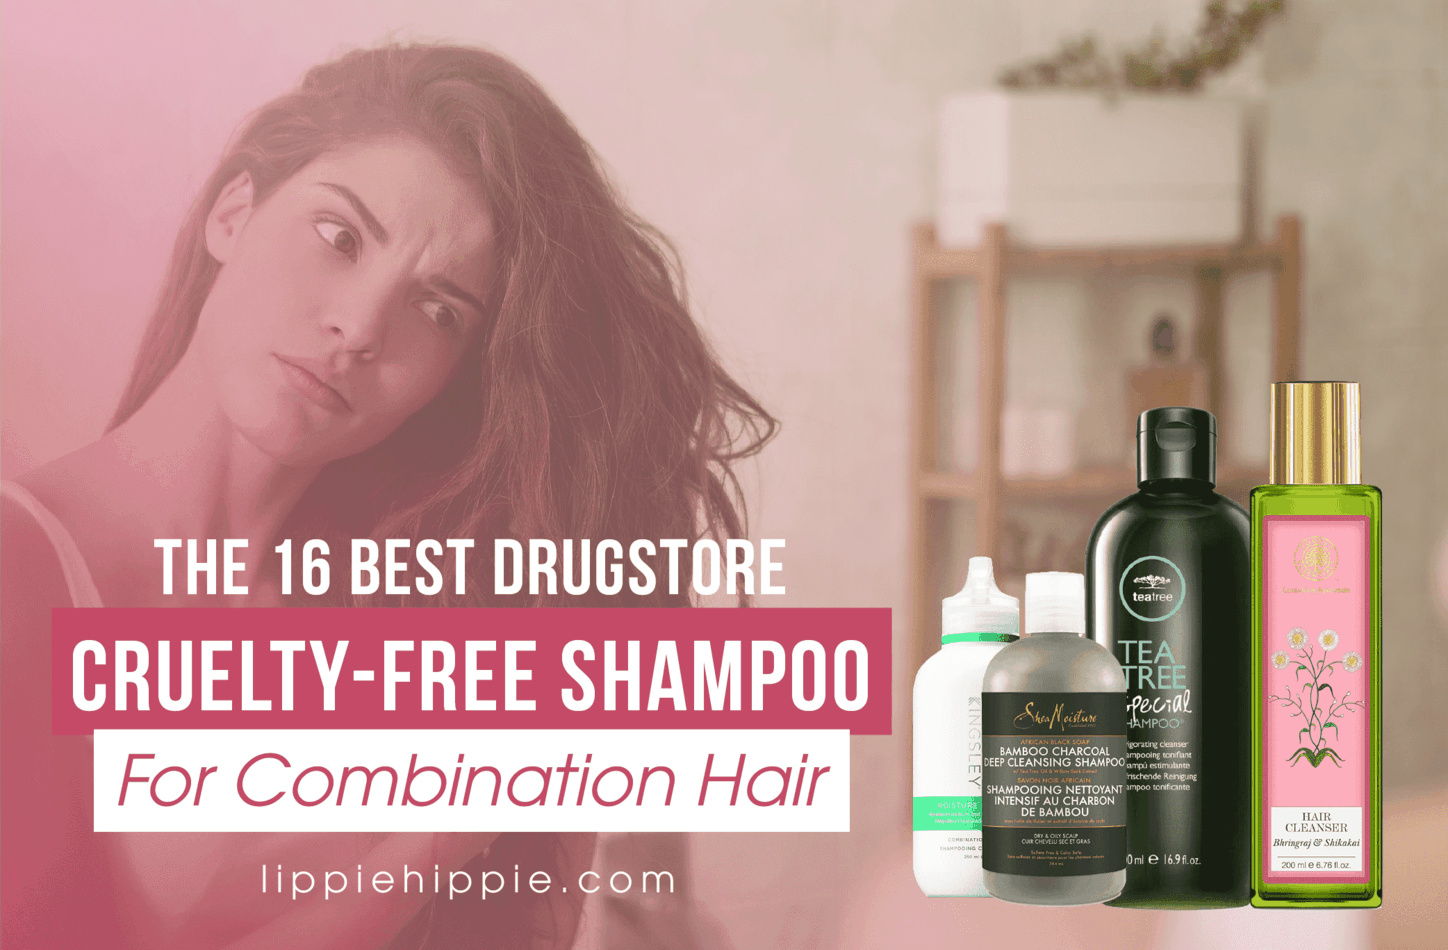 Best Drugstore Cruelty-Free Shampoo for Combination Hair